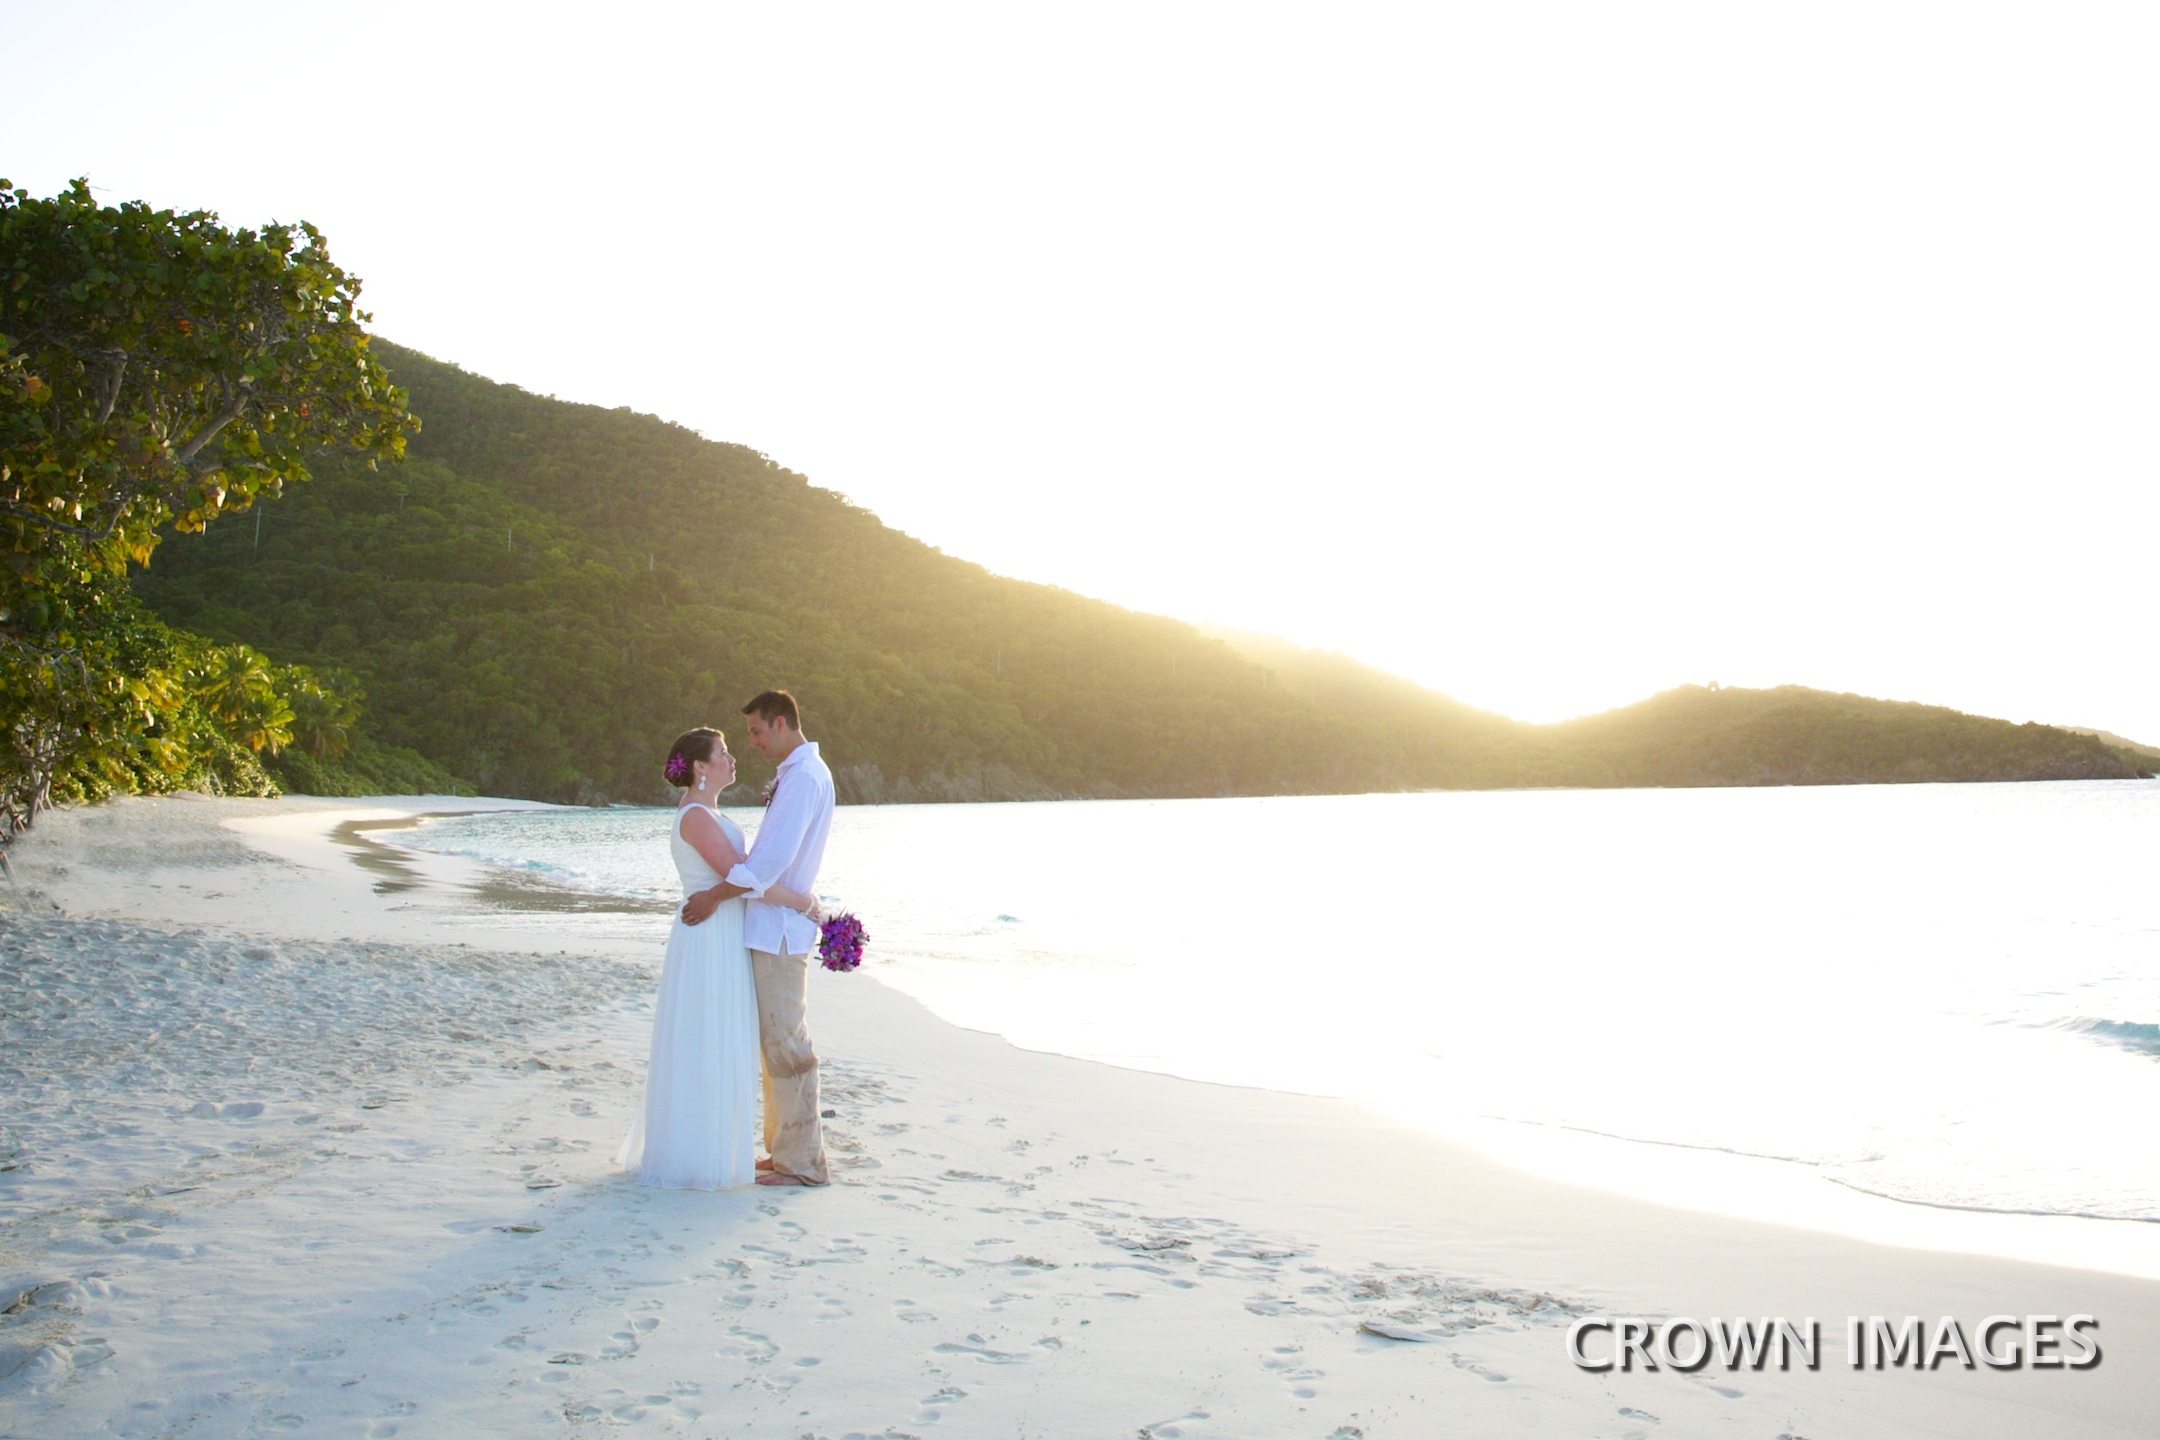 st_john_wedding_IMG_7159.jpg